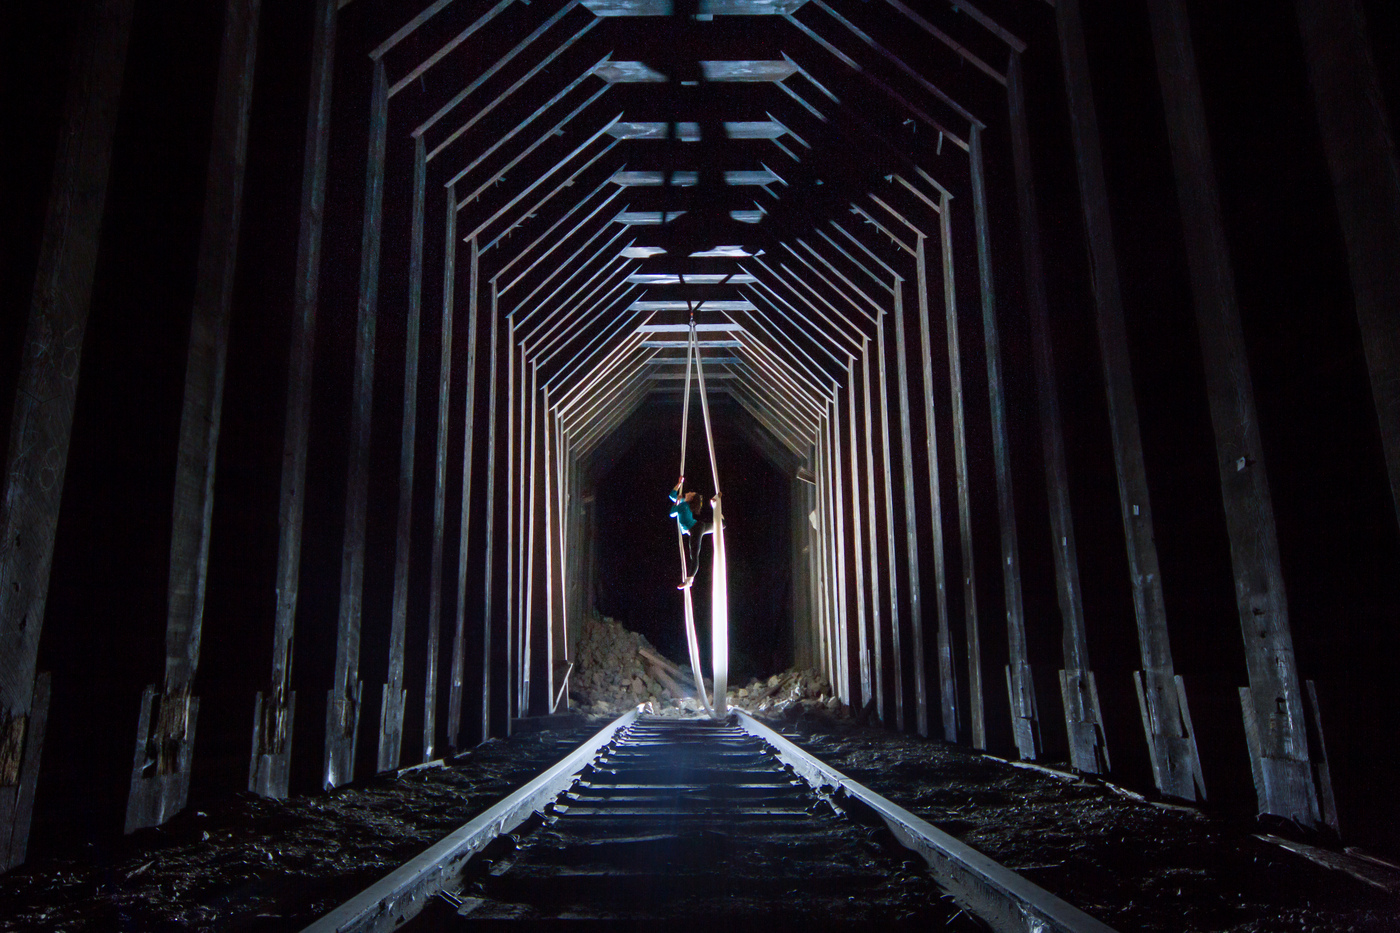 Tunnel 4